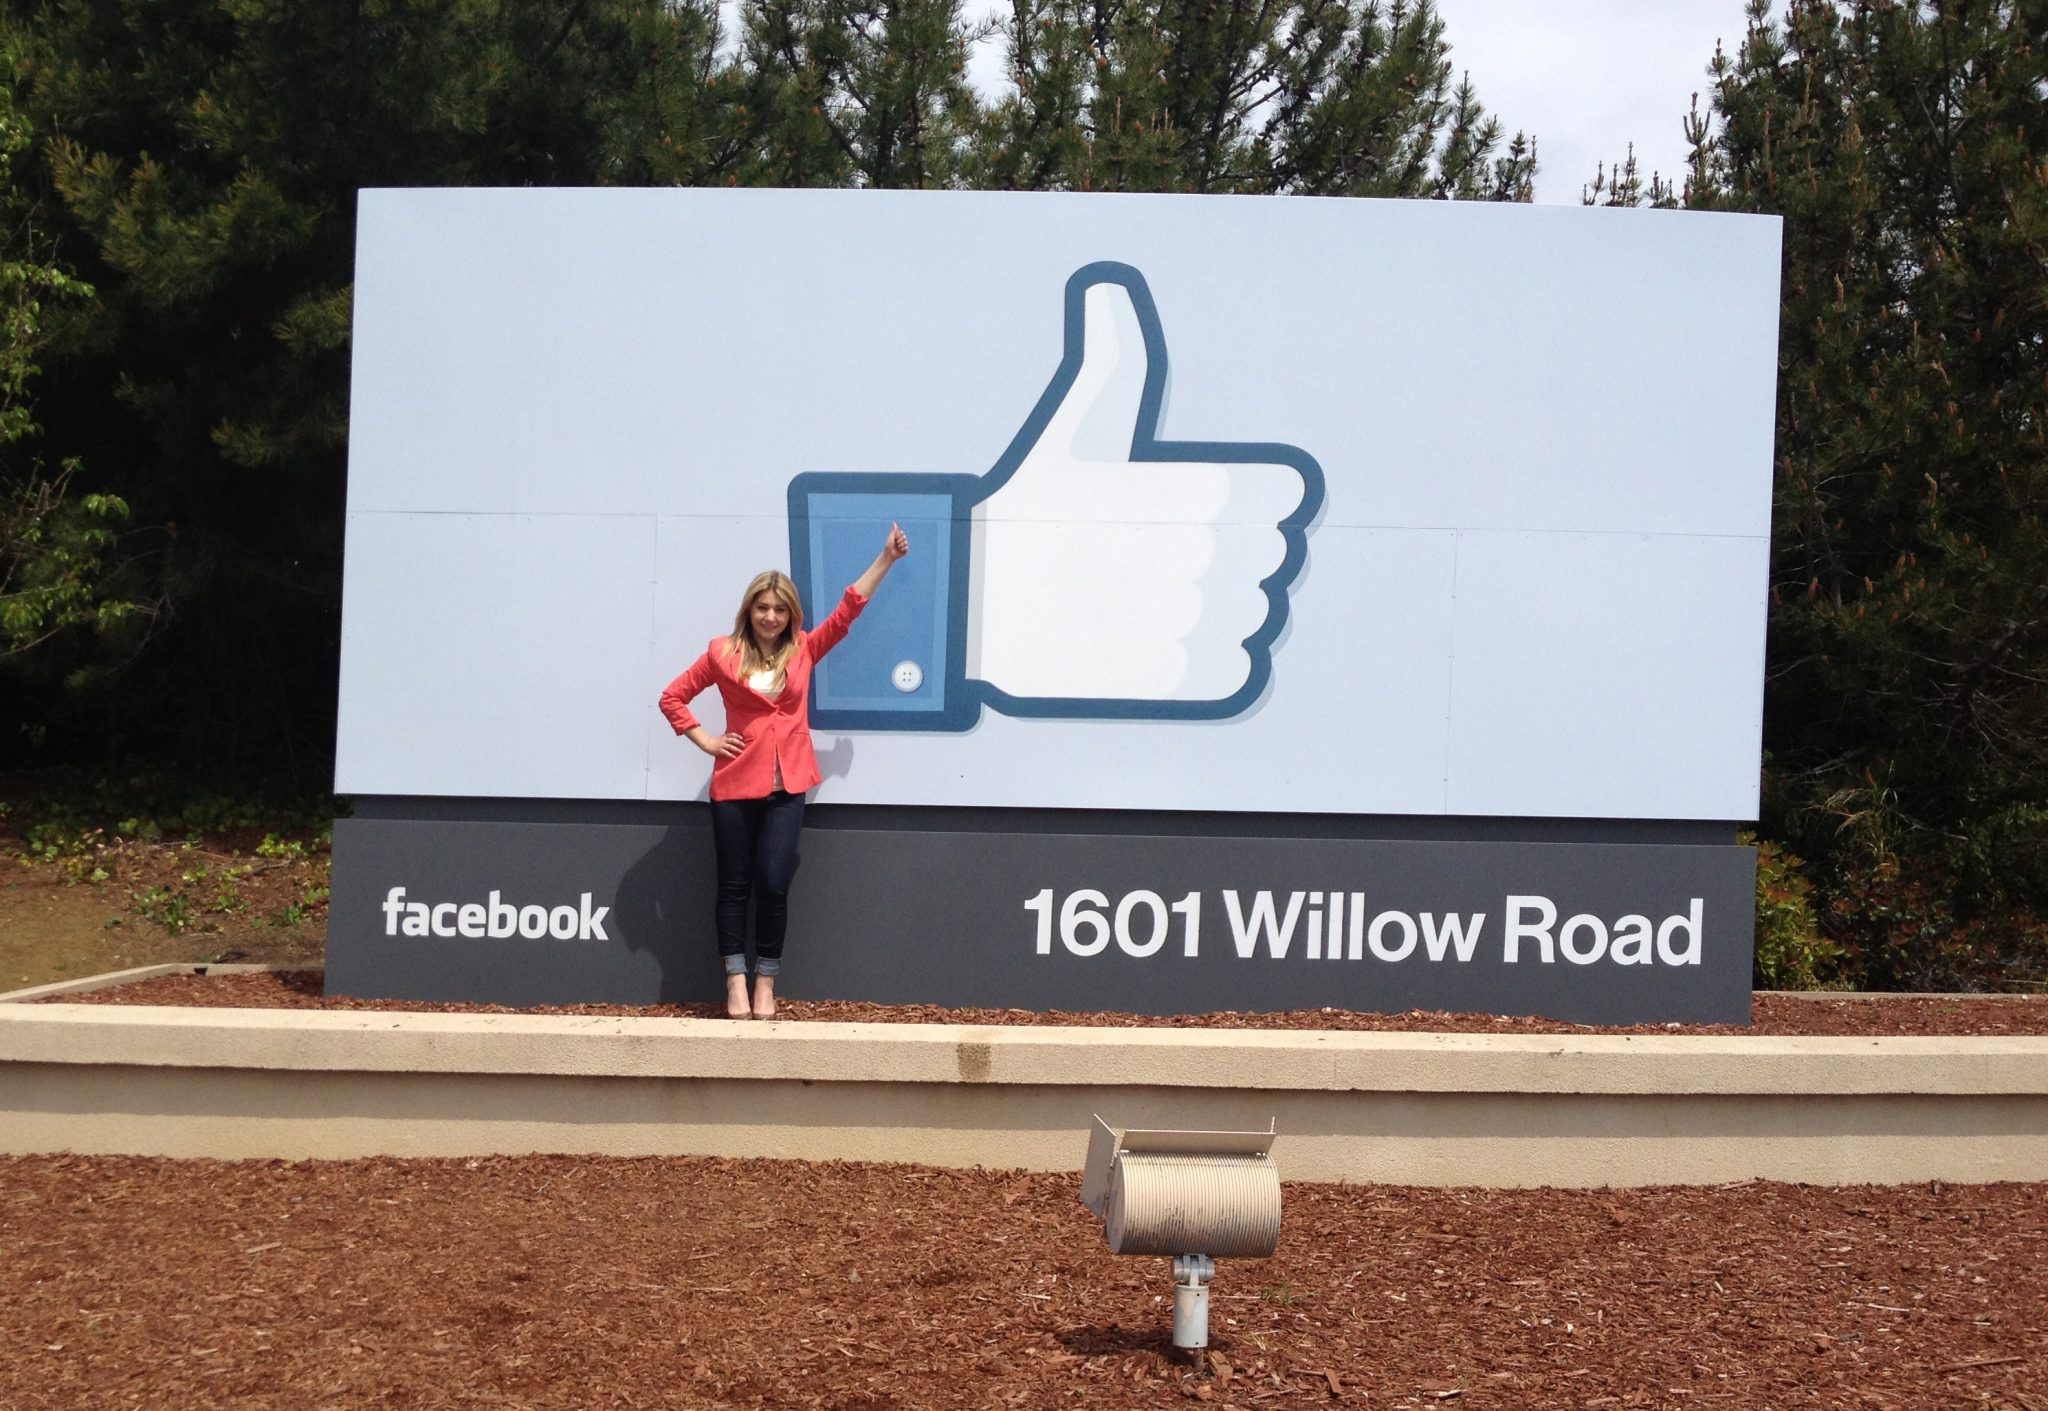 Tour of the Facebook Headquarters in Menlo Park, Ca  | Rachel's